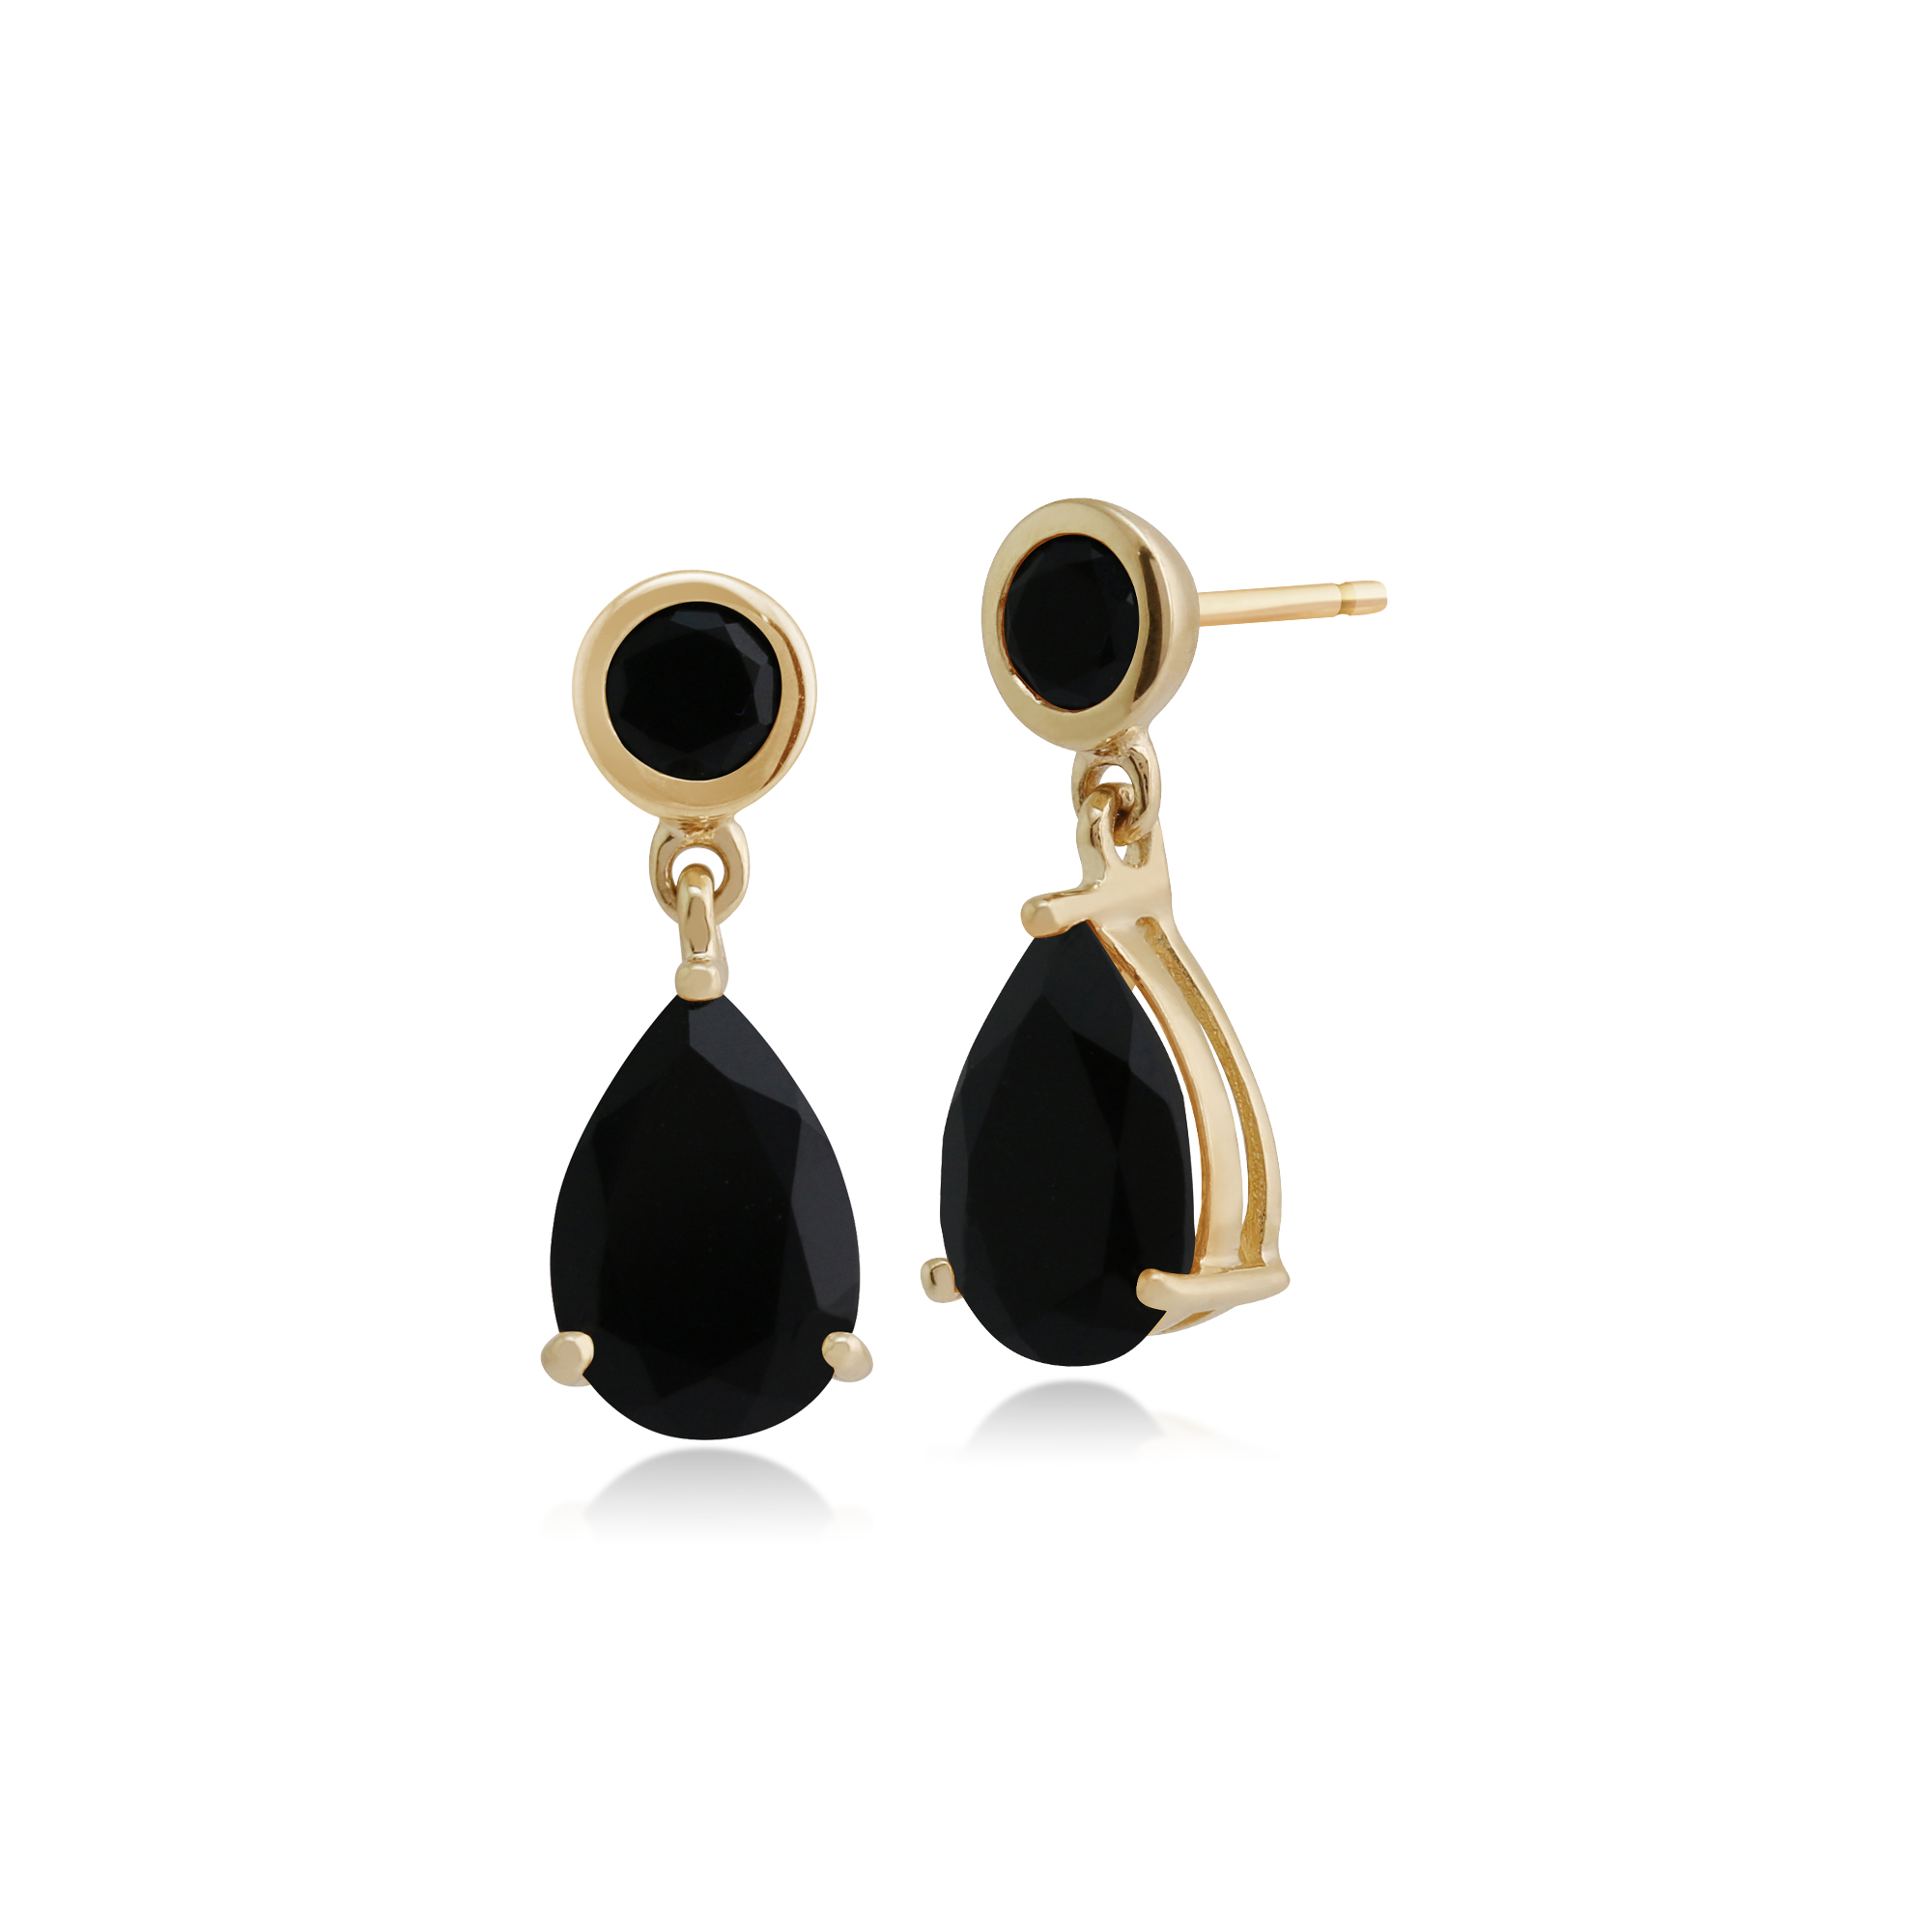 BALL 9ct YELLOW GOLD DROP EARRINGS 10mm GENUINE FACETED BLACK ONYX ROUND BEAD